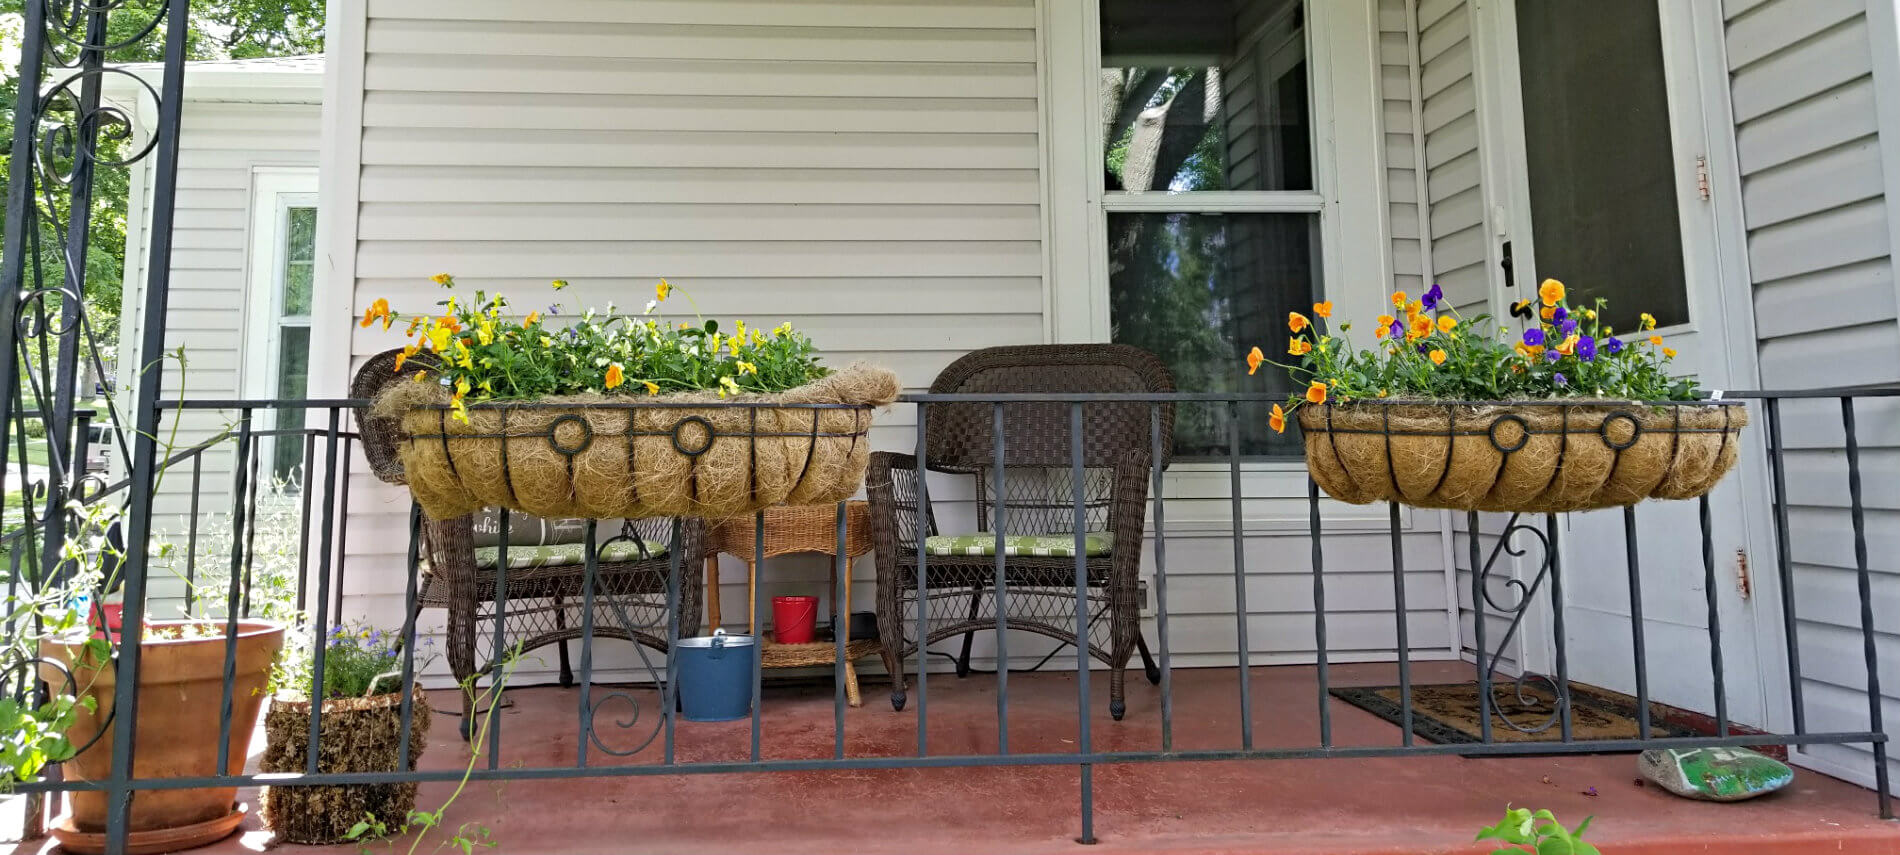 Red stained patio with black metal railing, flower pots and baskets, and two wicker chairs with green cushions